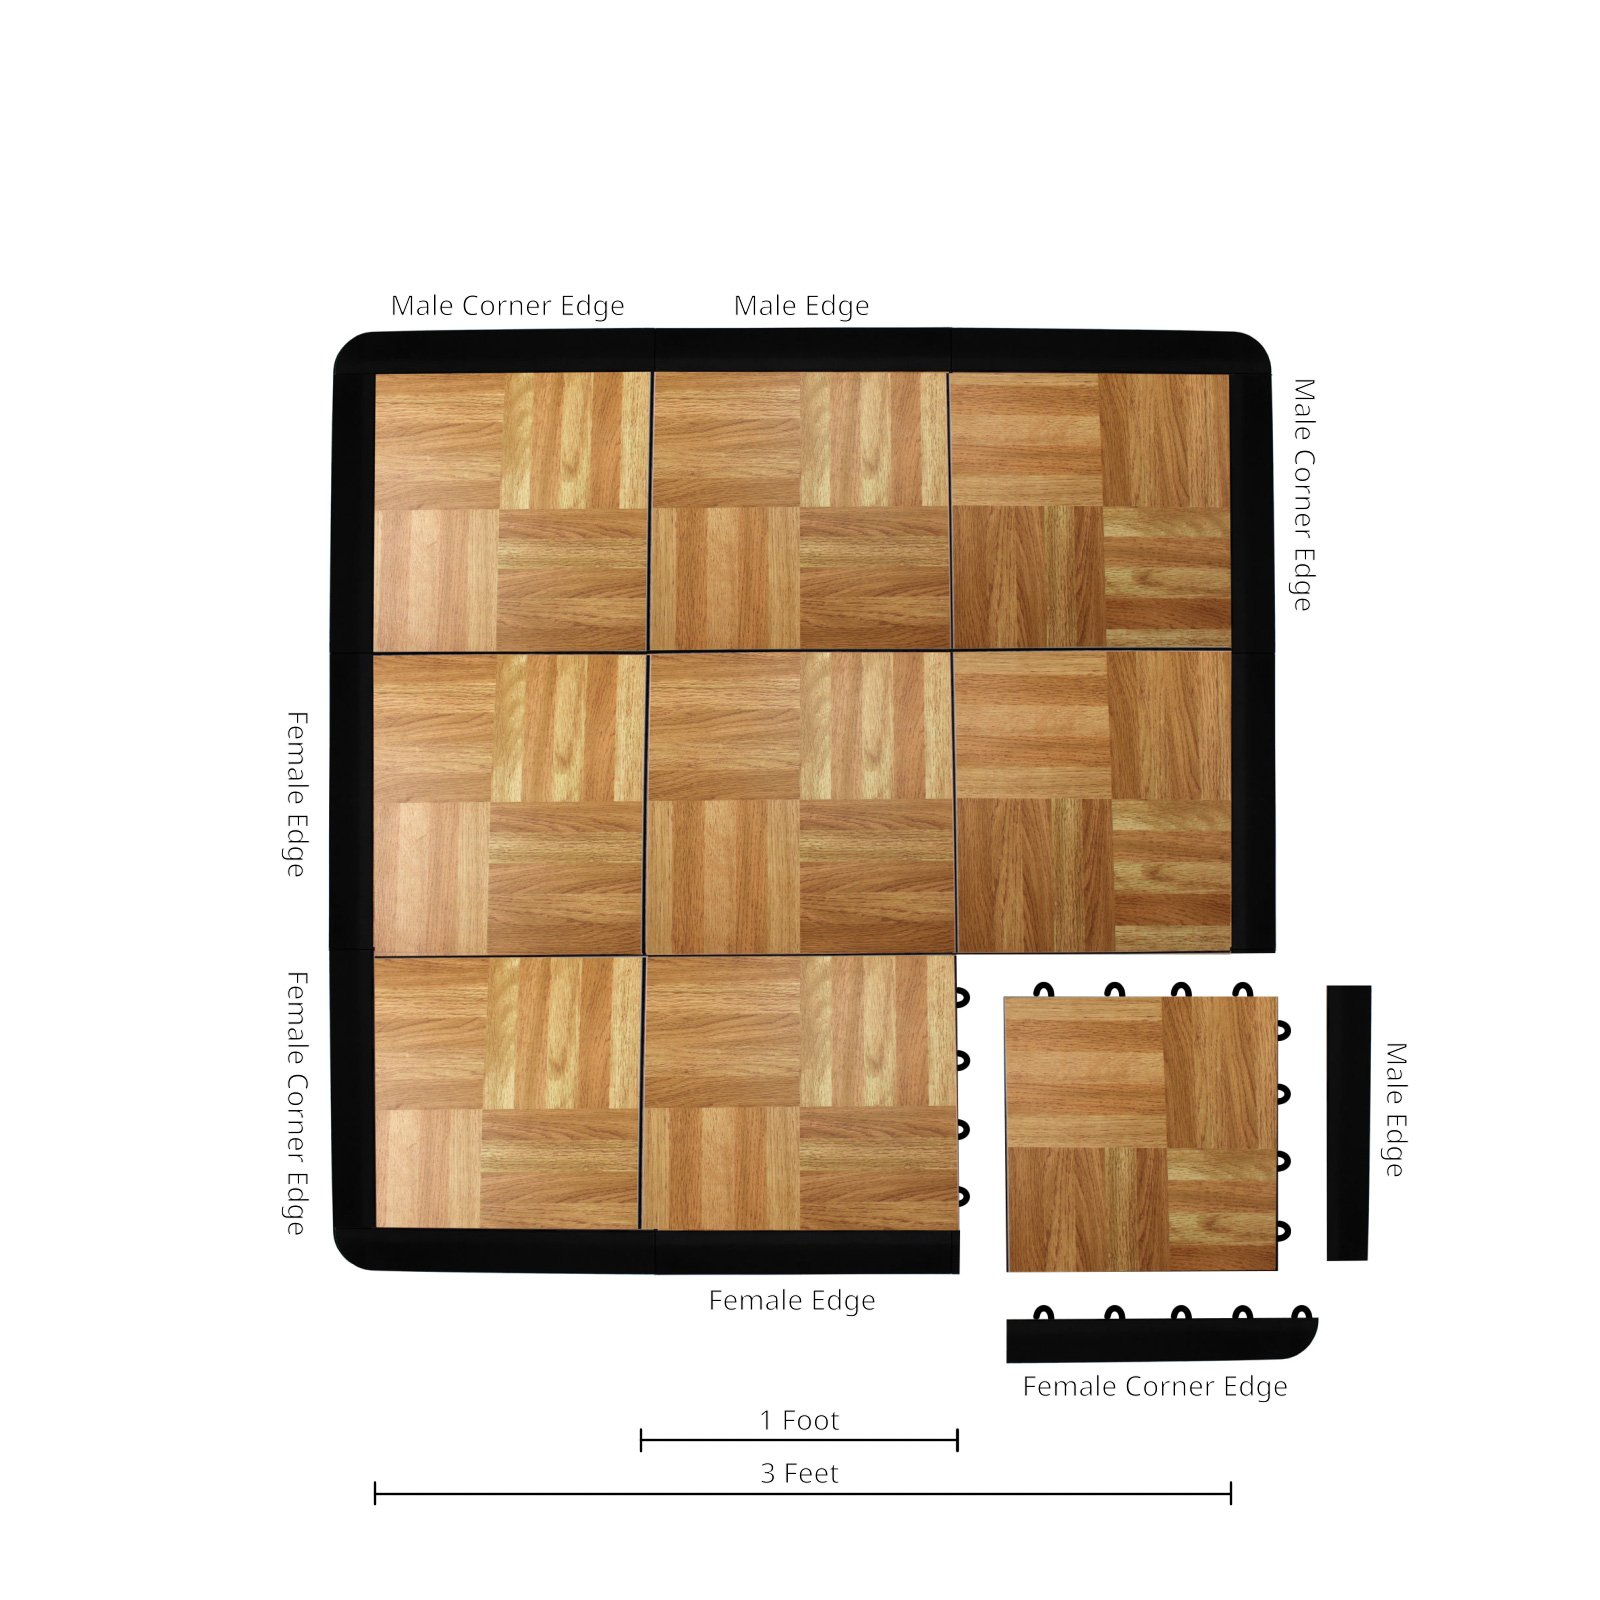 IncStores - 9 Piece Modular Tap Dance Set with Edge Pieces (Oak) - Excellent for use as portable dance floors, trade show booths, and general flooring